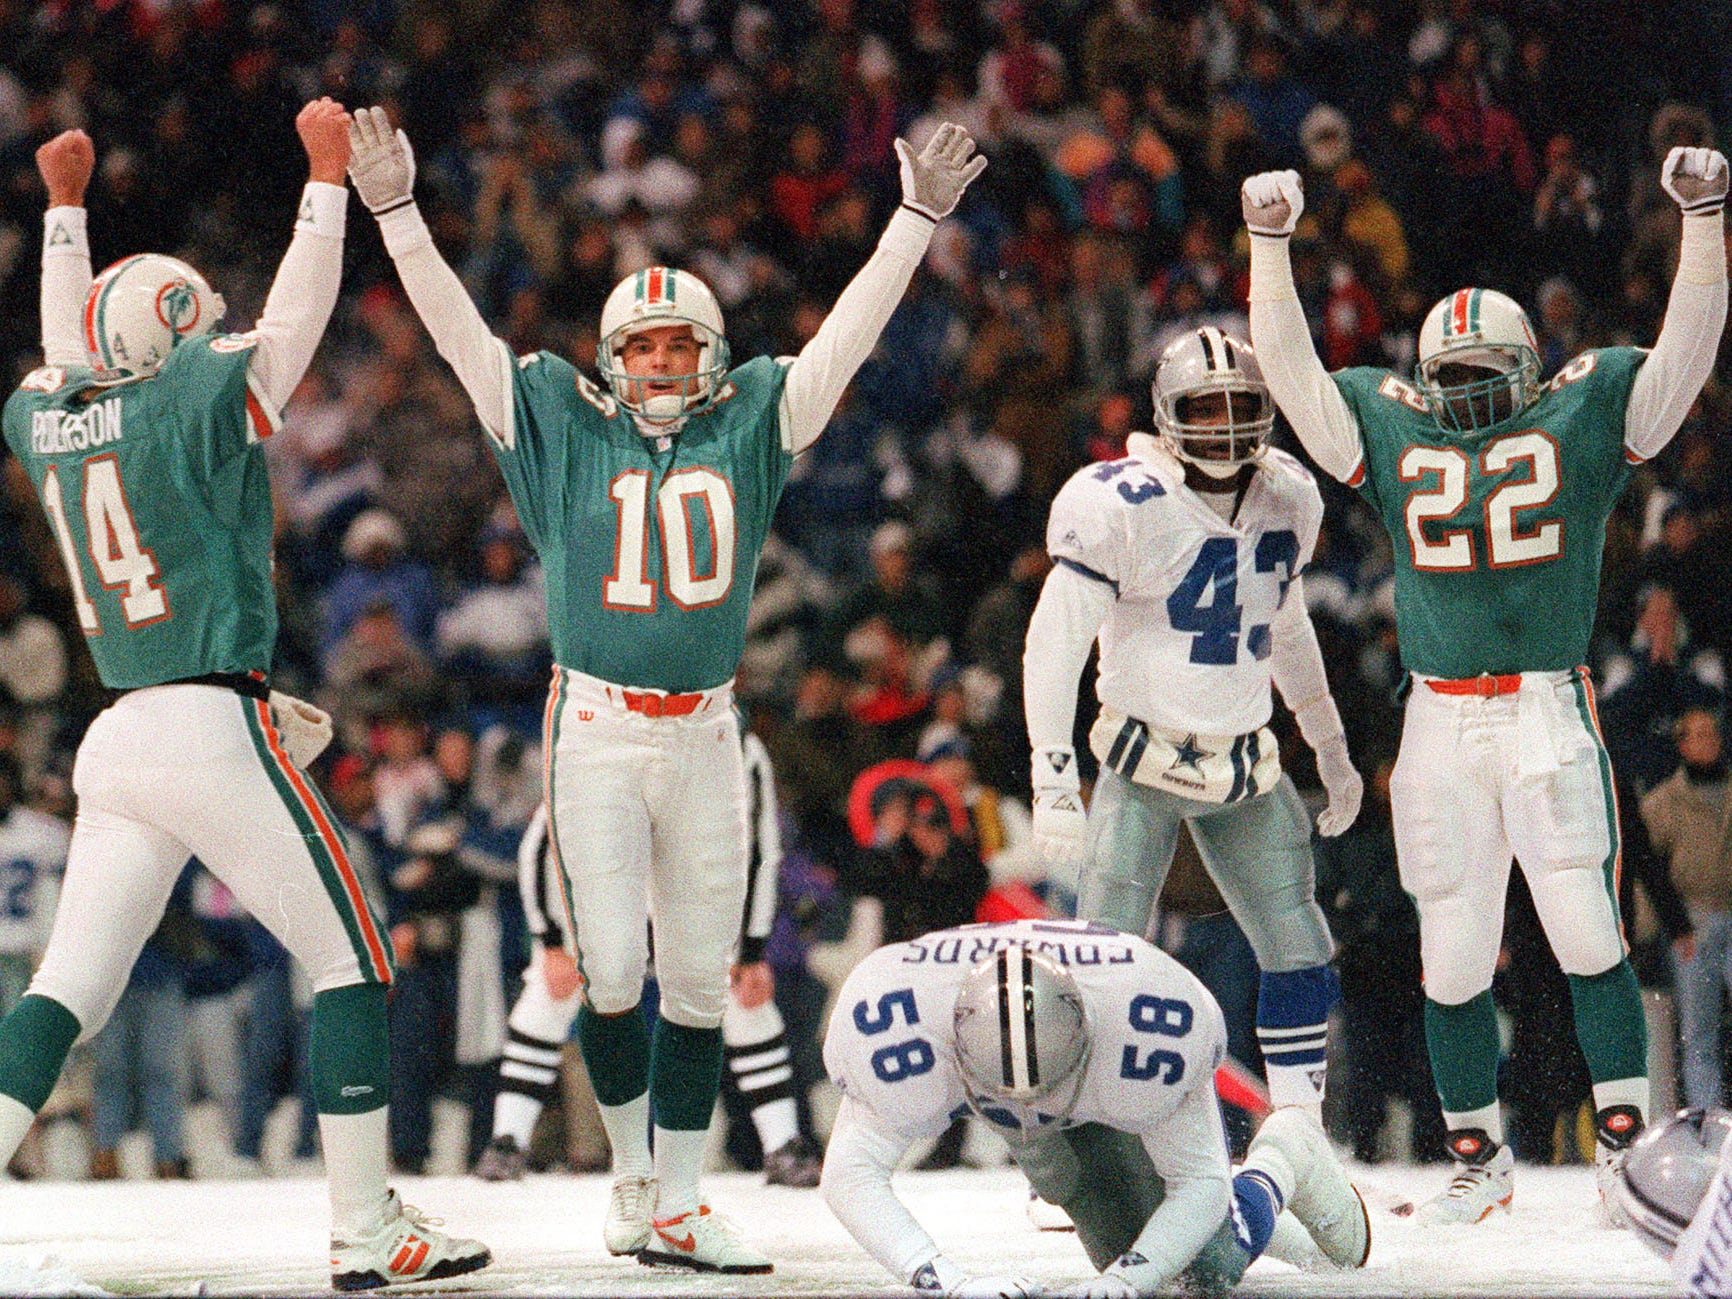 Nov. 25, 1993: Miami Dolphins quarterback Doug Pederson (14), kicker Pete Stoyanovich (10) and James Saxon (22) celebrate after Stoyanovich kicked the winning field goal with 3 seconds remaining in Miami's 16-14 win over the Dallas Cowboys at Texas Stadium on Thanksgiving Day.